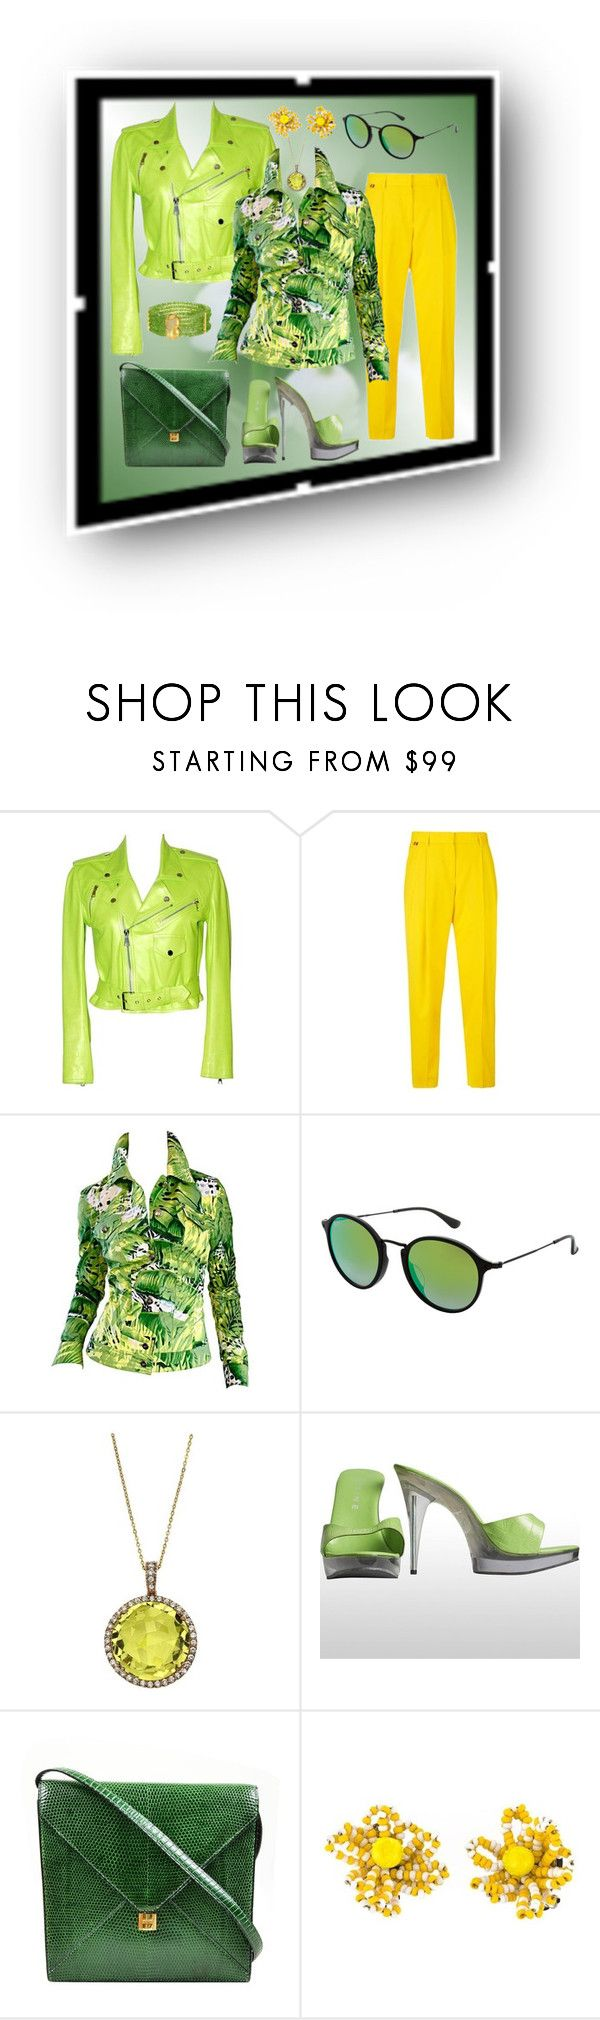 """my  fav set"" by georgine-d ❤ liked on Polyvore featuring Ralph Lauren, Paul Smith, Ray-Ban, Emilio!, Hermès and Christian Lacroix"